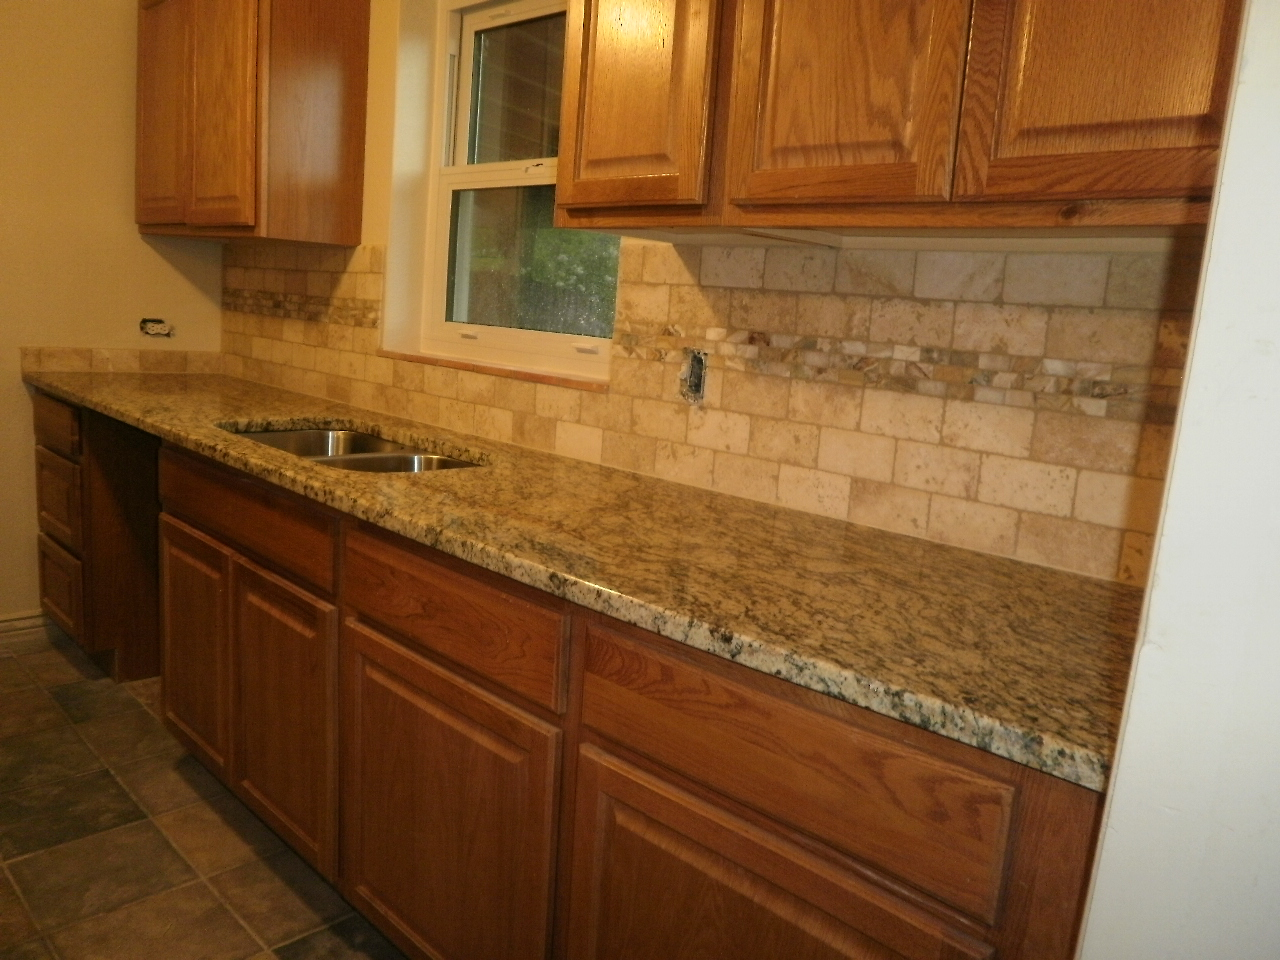 Santa cecilia granite backsplash ideas Kitchen tile backsplash